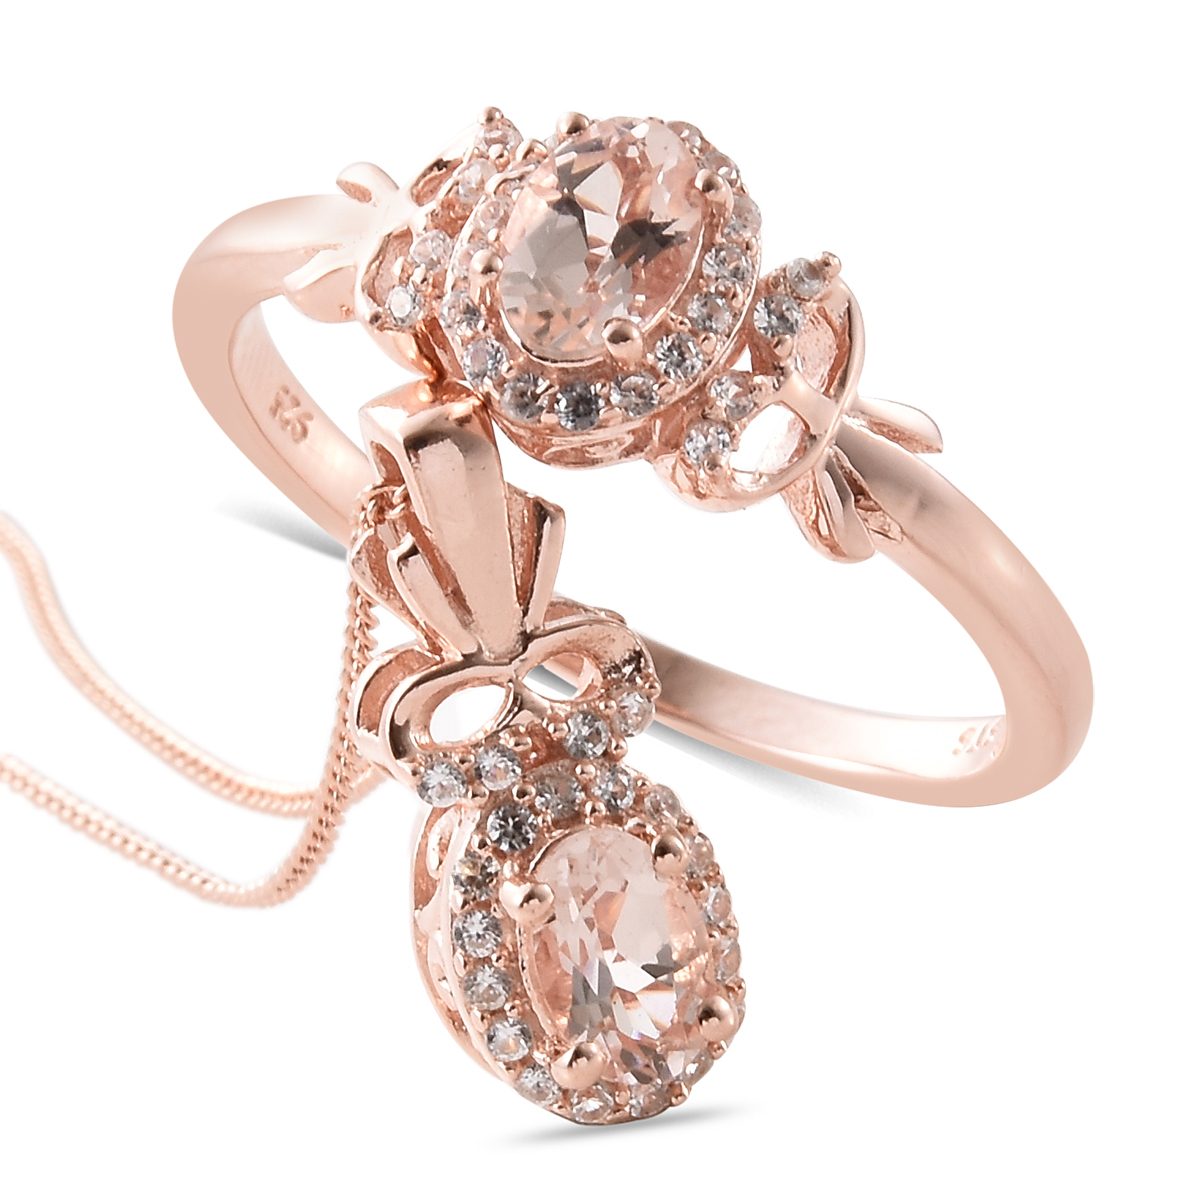 Marropino Morganite, Cambodian Zircon Vermeil Rg Over Sterling Silver Bow Ring (Size 9) And Pendant With Chain (20 In) Tgw 1.20 Cts (View 25 of 25)